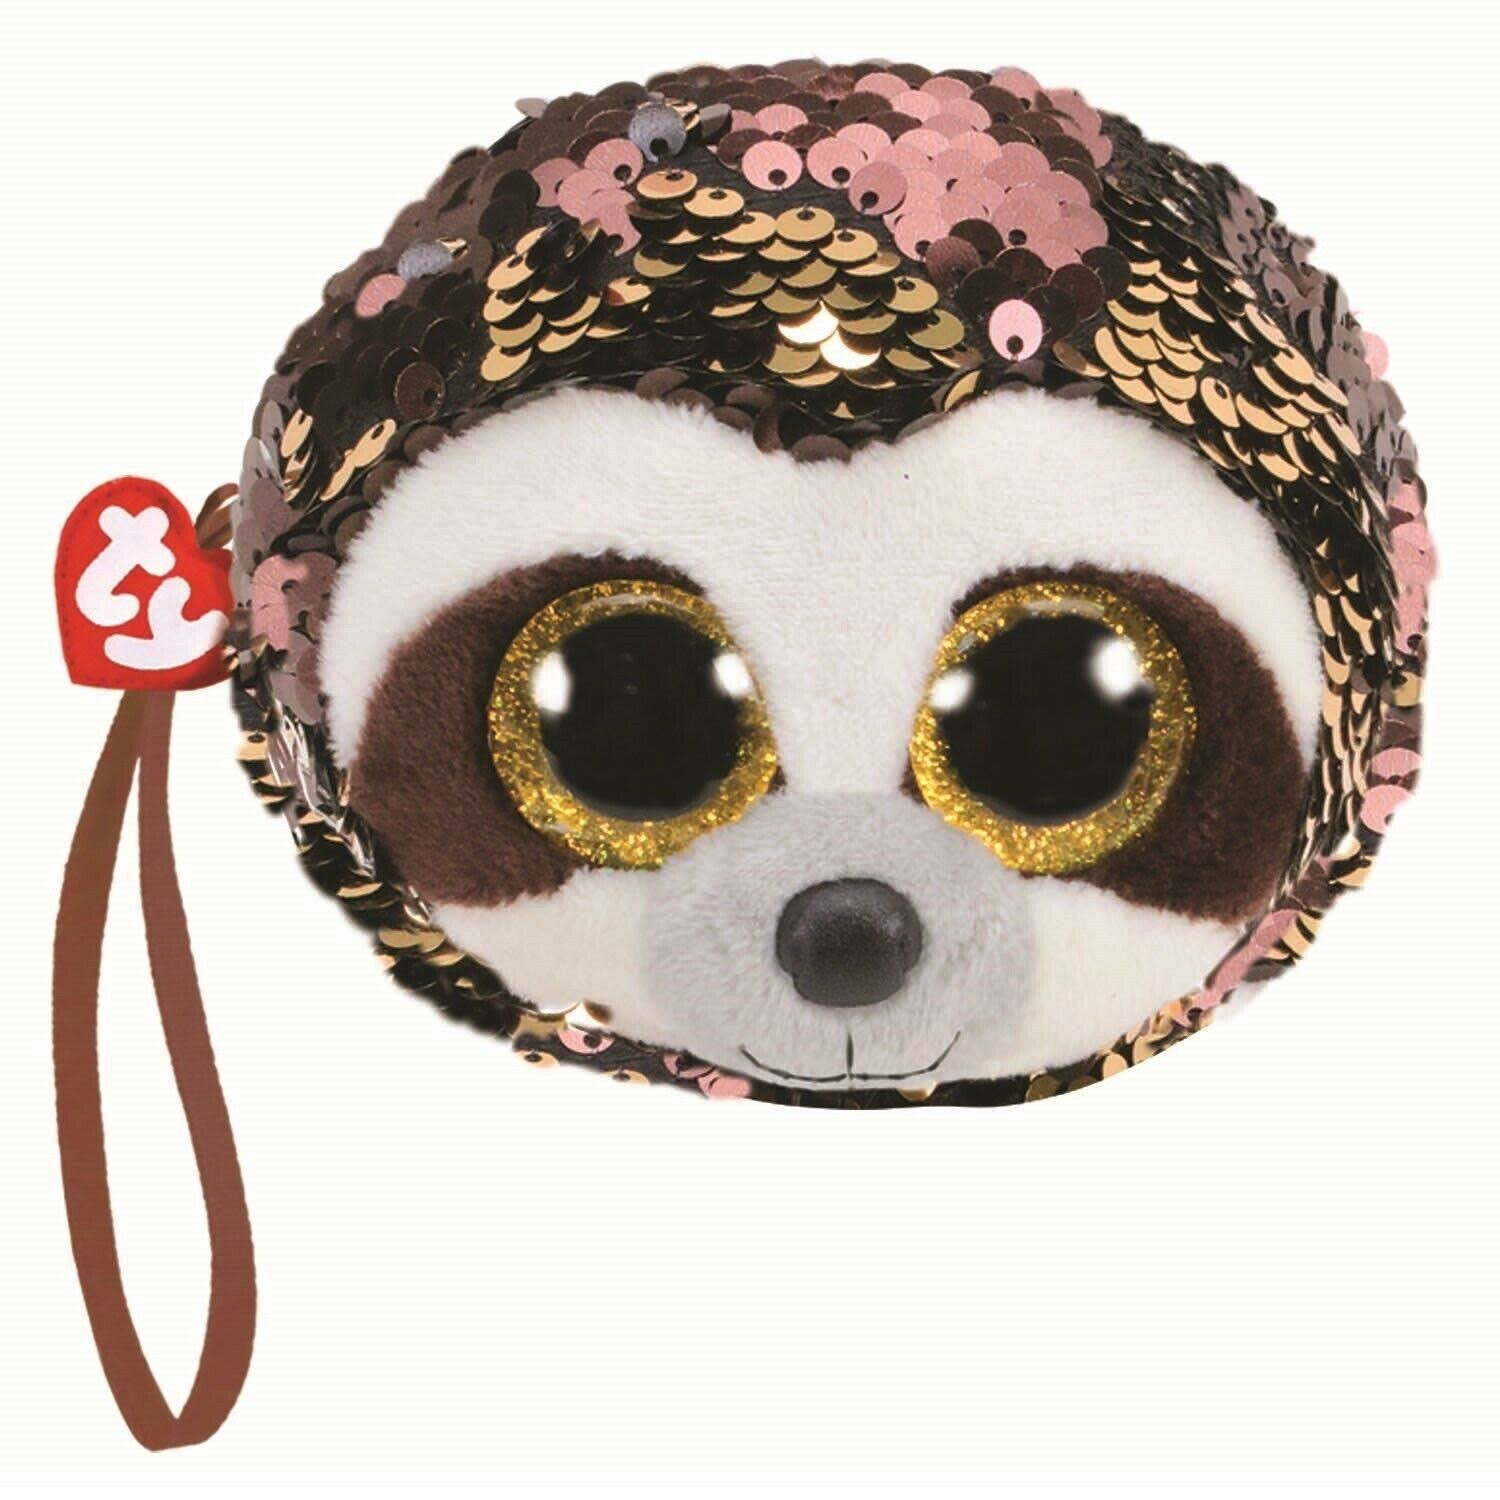 Ty Fashion Flippy Sequin Wristlet - Dangler The Sloth (5 inch)